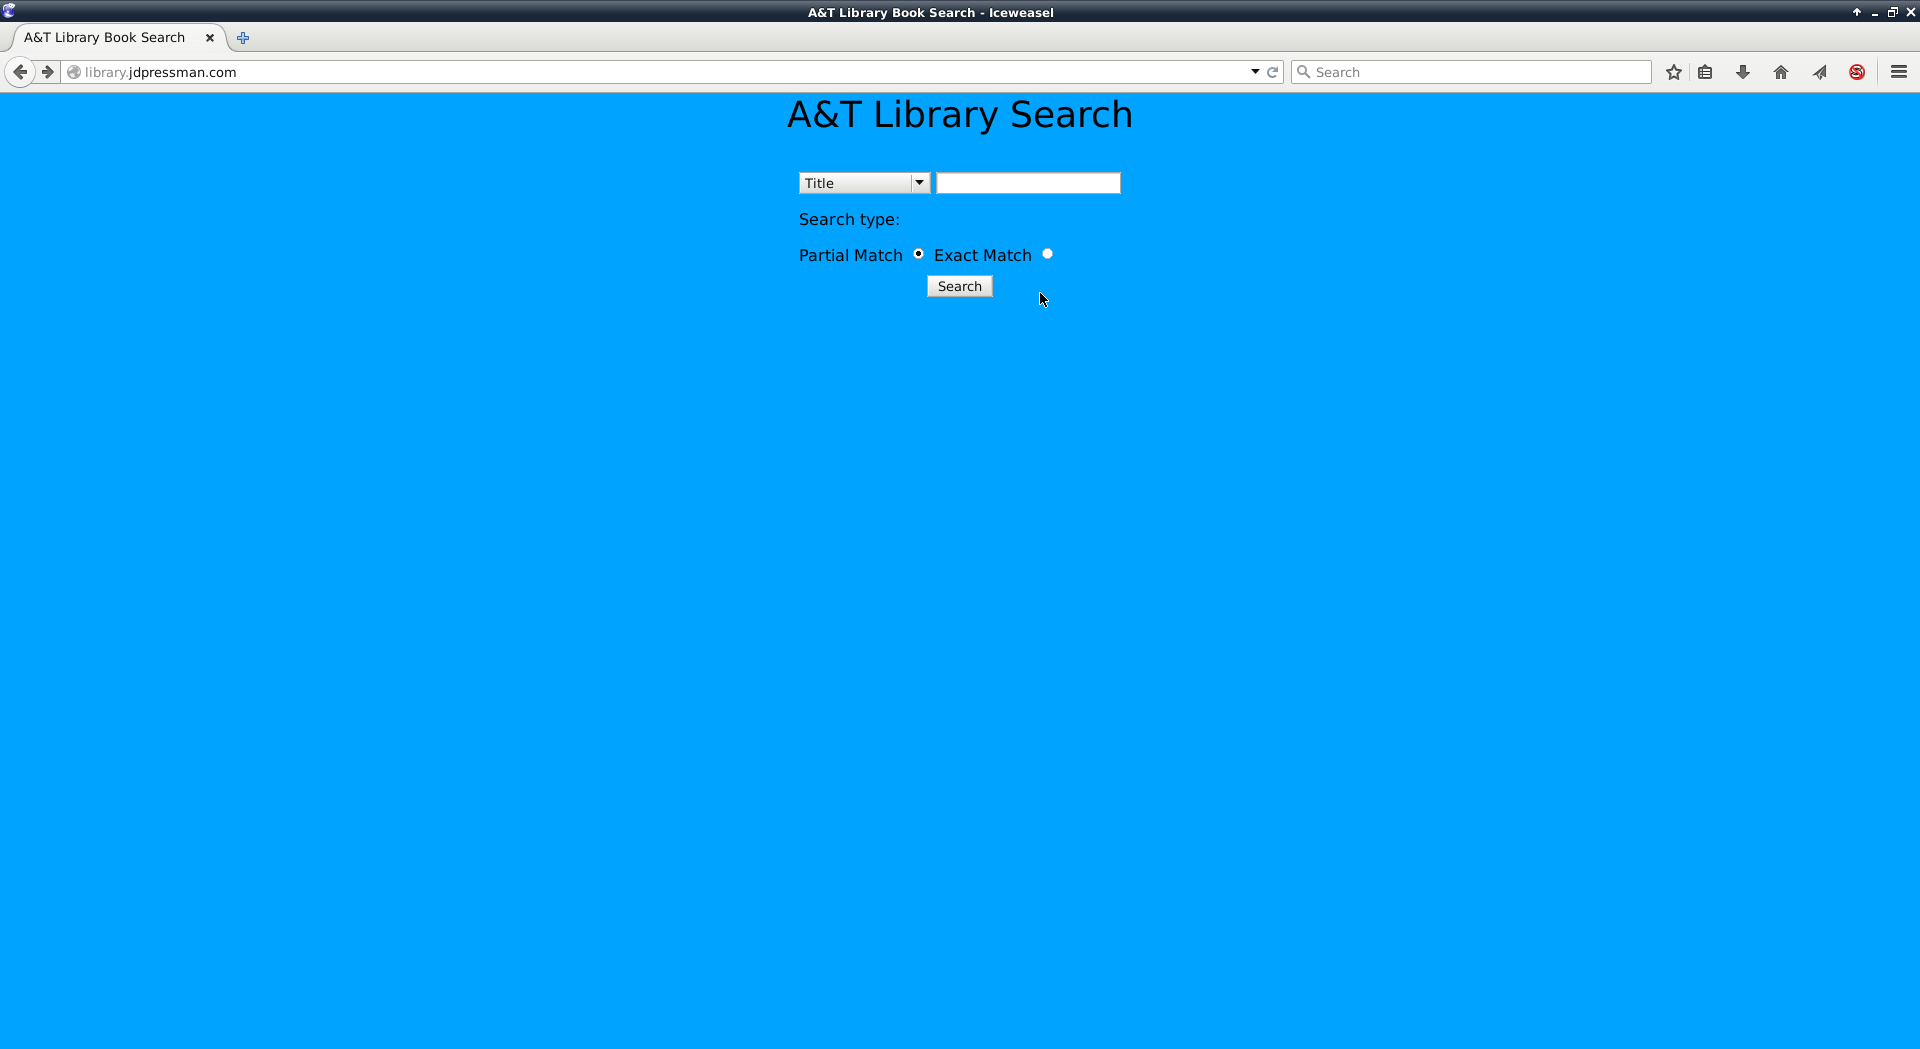 Screenshot of the search page.